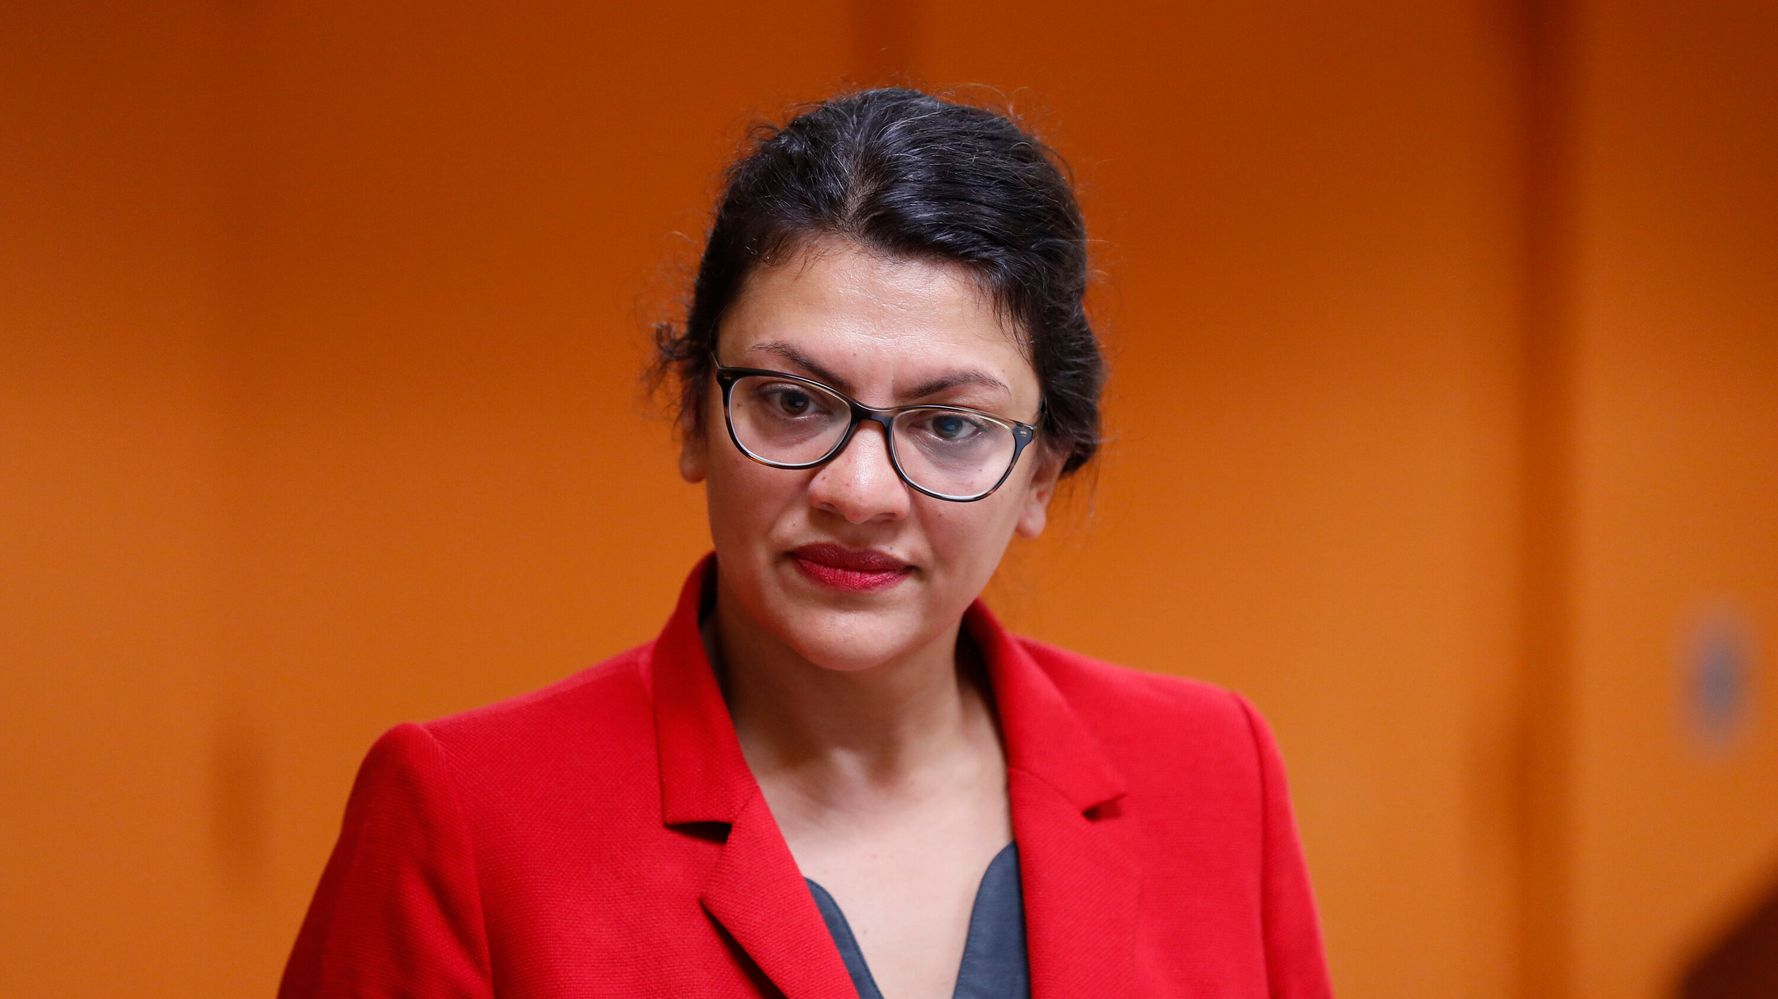 Westlake Legal Group 5d56b27c2200002f00f67bdc Rashida Tlaib Cancels Visit To West Bank, Citing 'Oppressive Conditions'